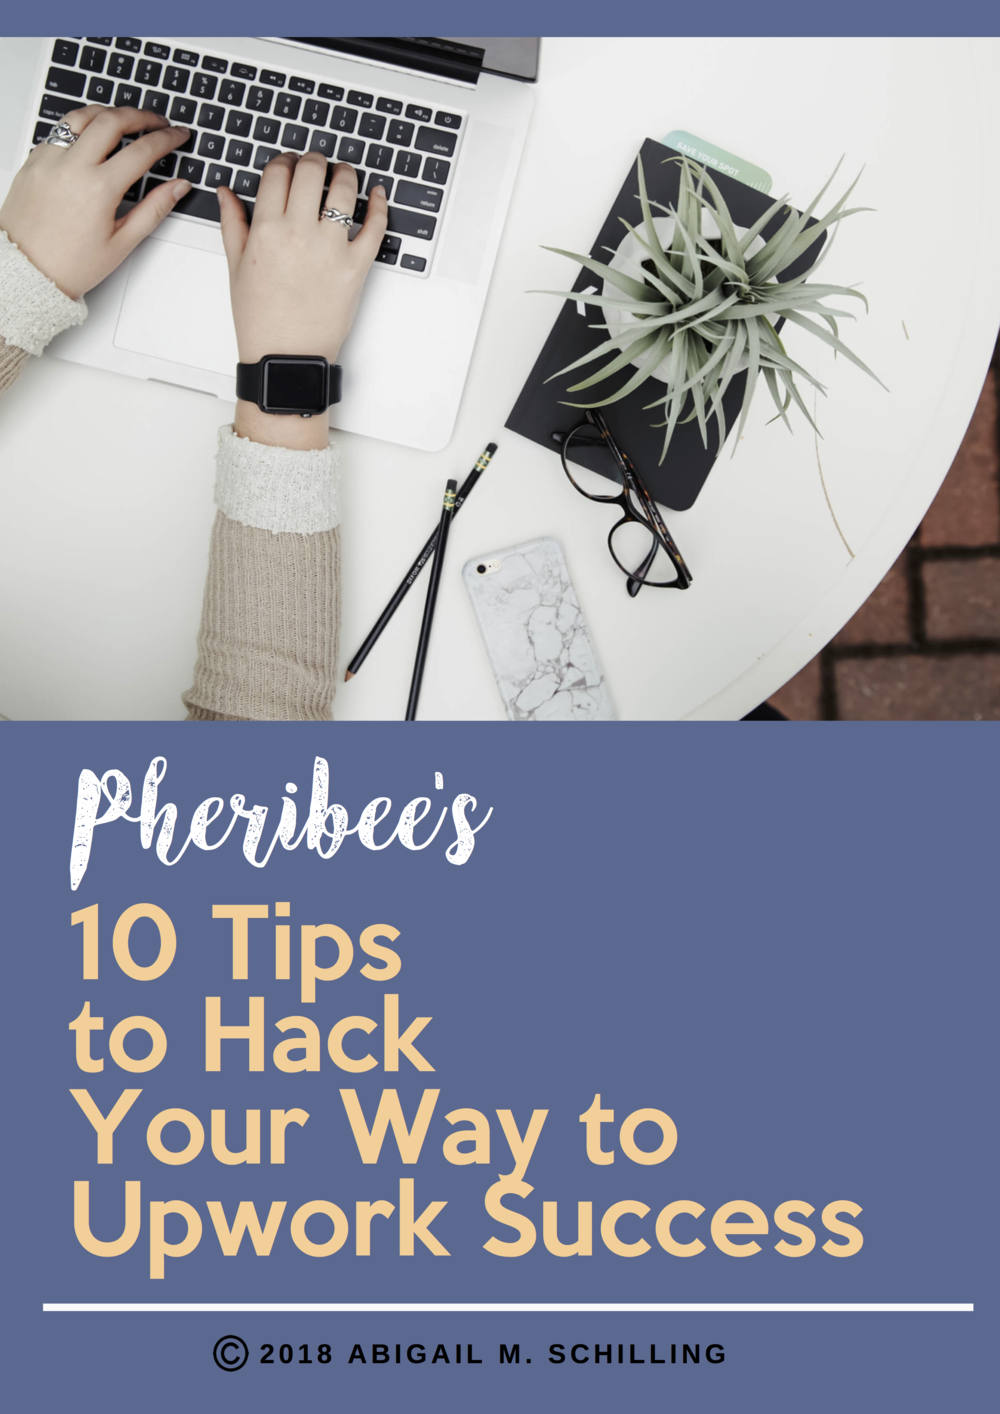 Pheribee's 10 Tips to Hack Your Way to Upwork Success (1).png